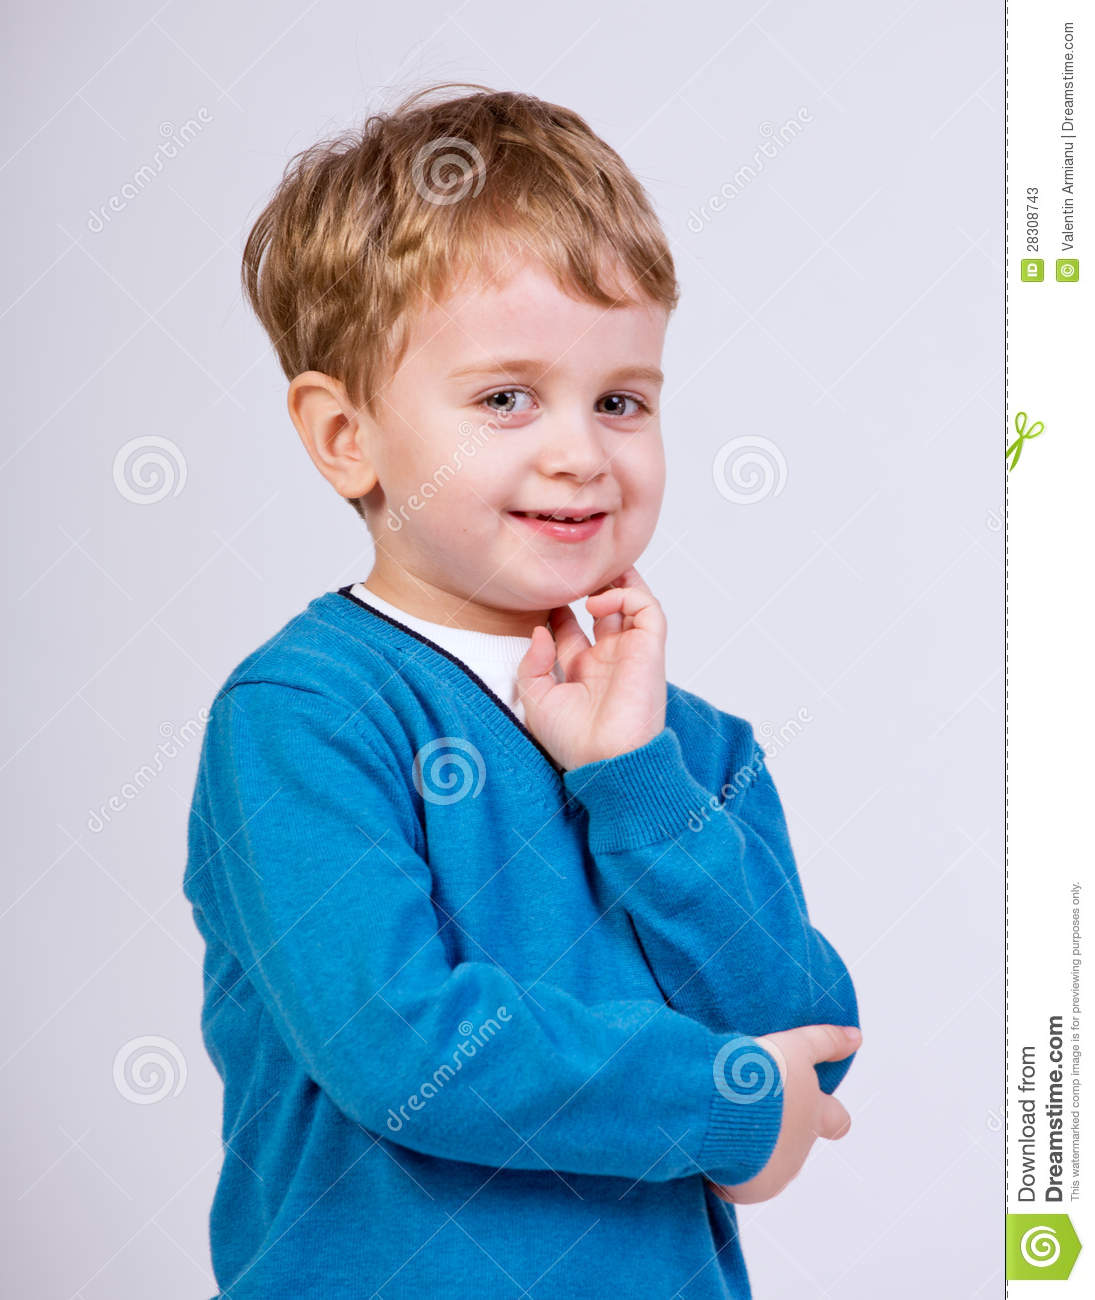 Https Www Dreamstime Com Stock Photos Thinking Young Kid Image28308743